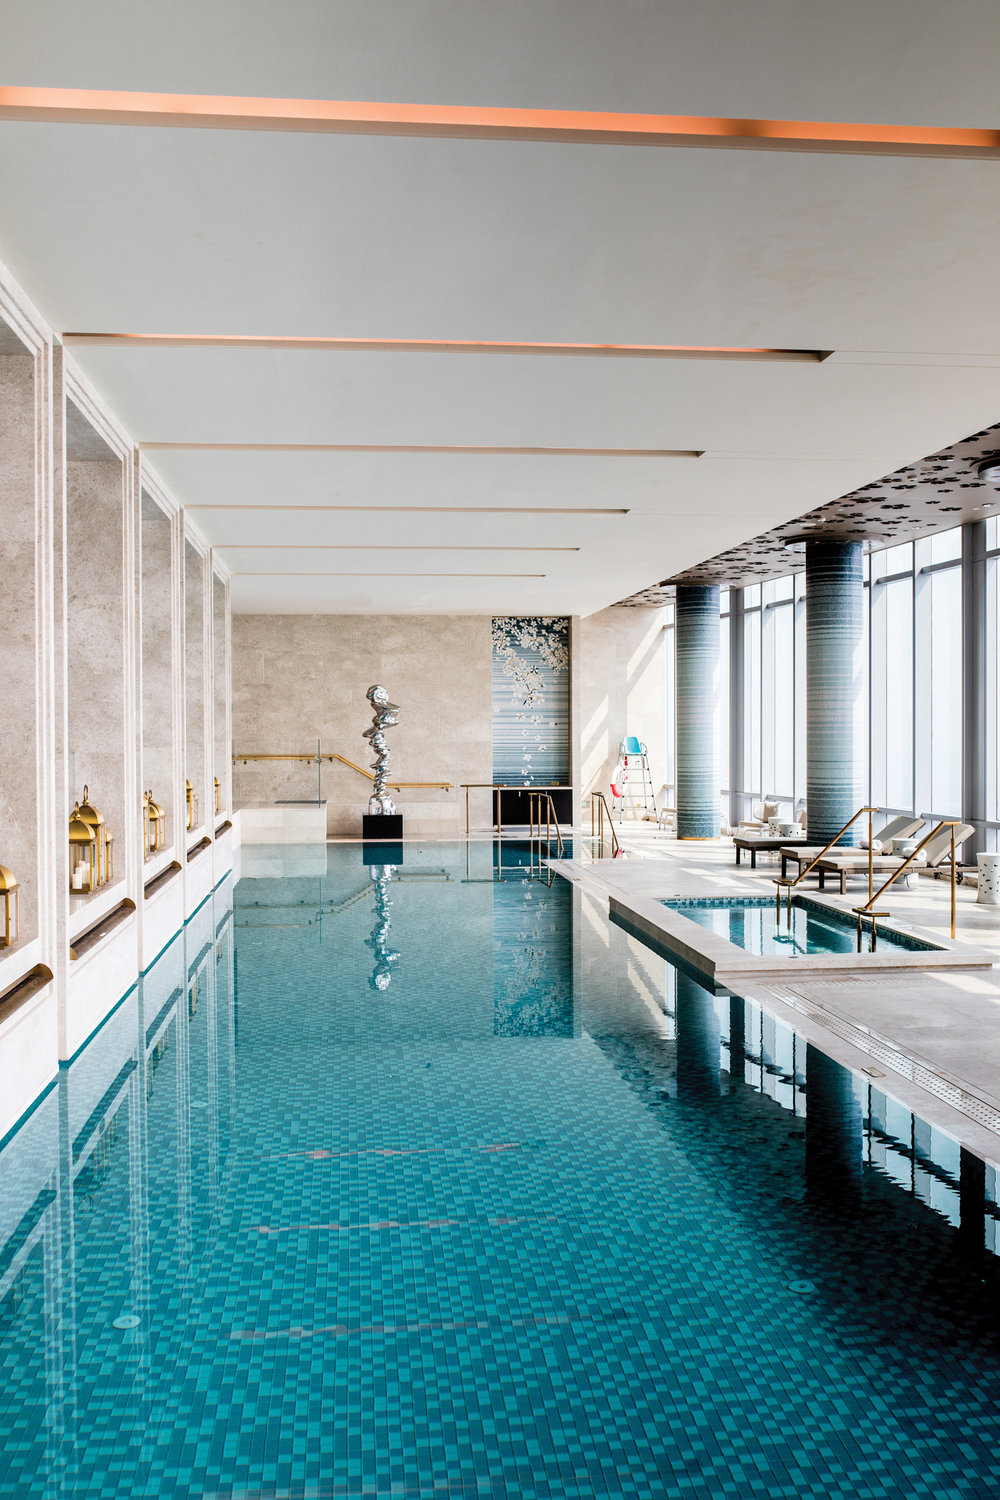 Waldorf Astoria Chengdu boasts a 25m pool on the 48th floor